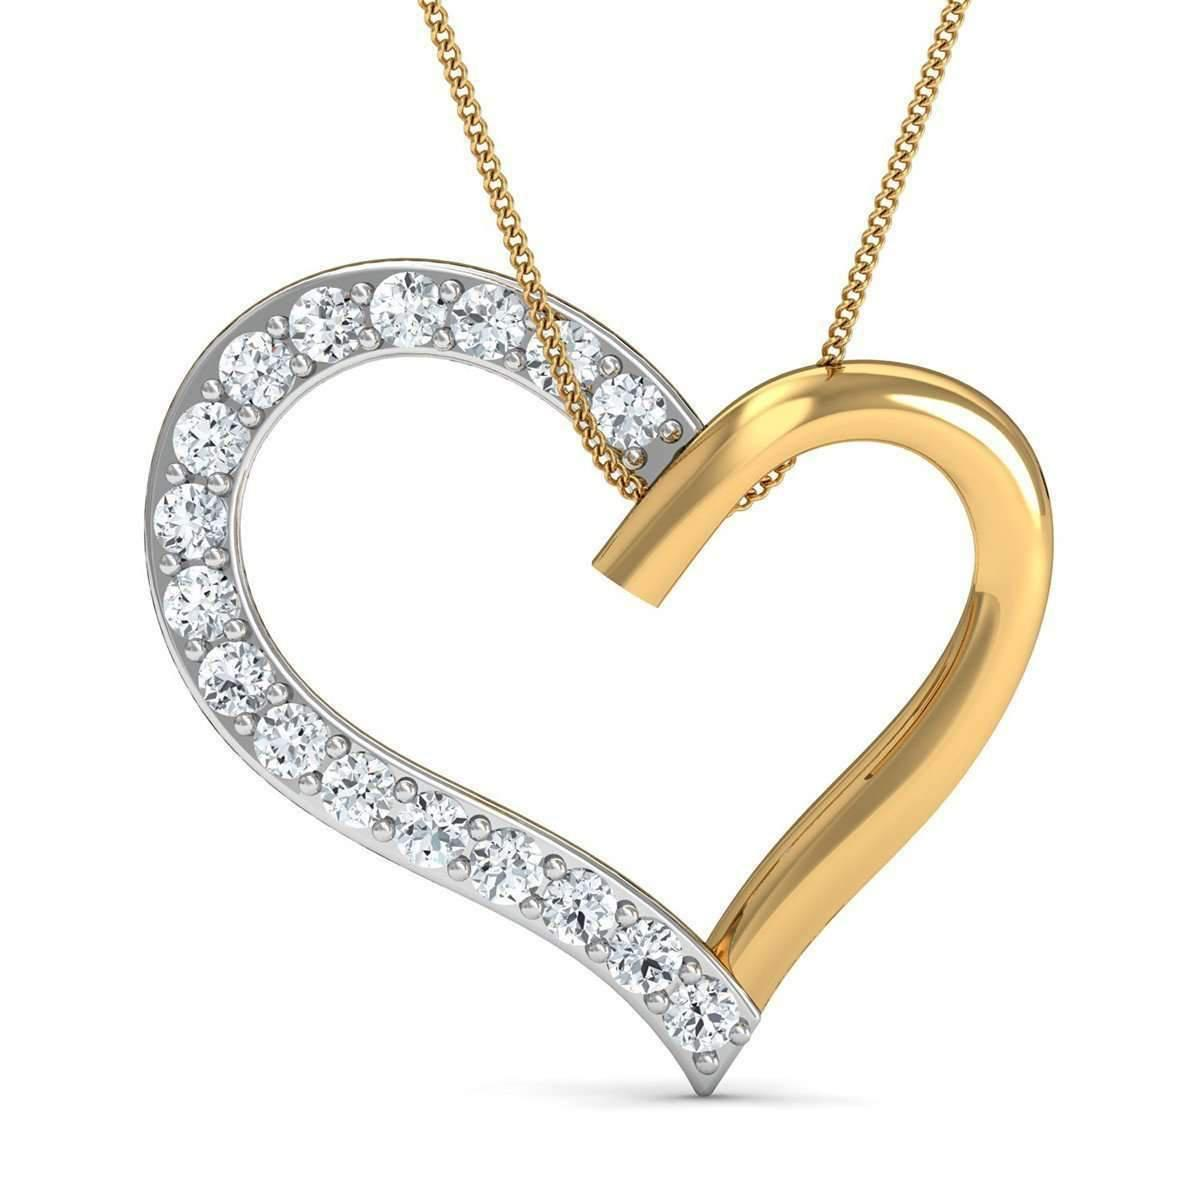 Diamoire Jewels Hand-carved Heart in 18kt Yellow Gold and Premium Diamonds jbxjn